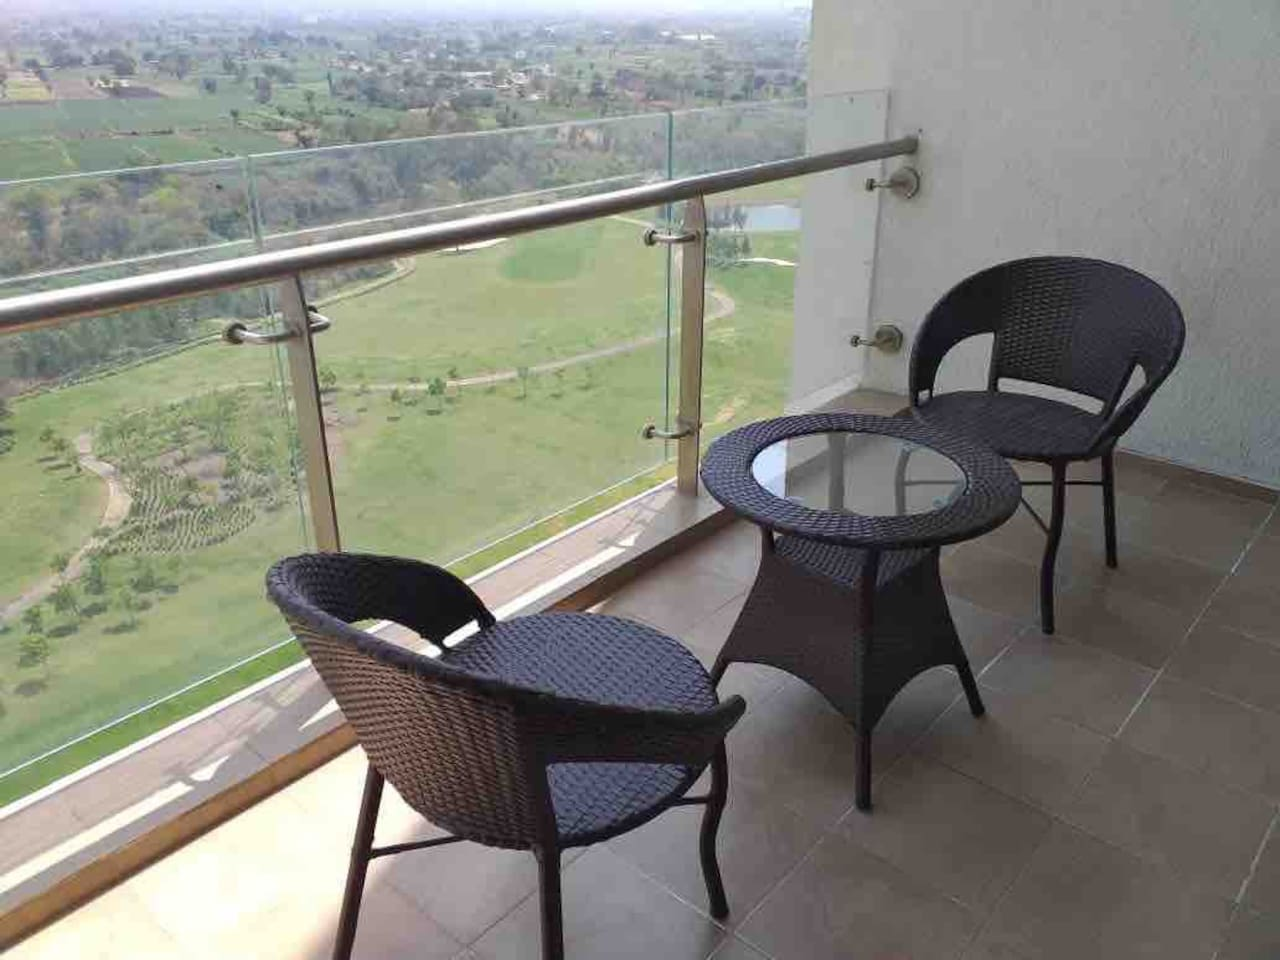 The balcony chairs invite you to soak in the cool breeze and lavish scenery spread out in front of you, over a cup of coffee or tea.